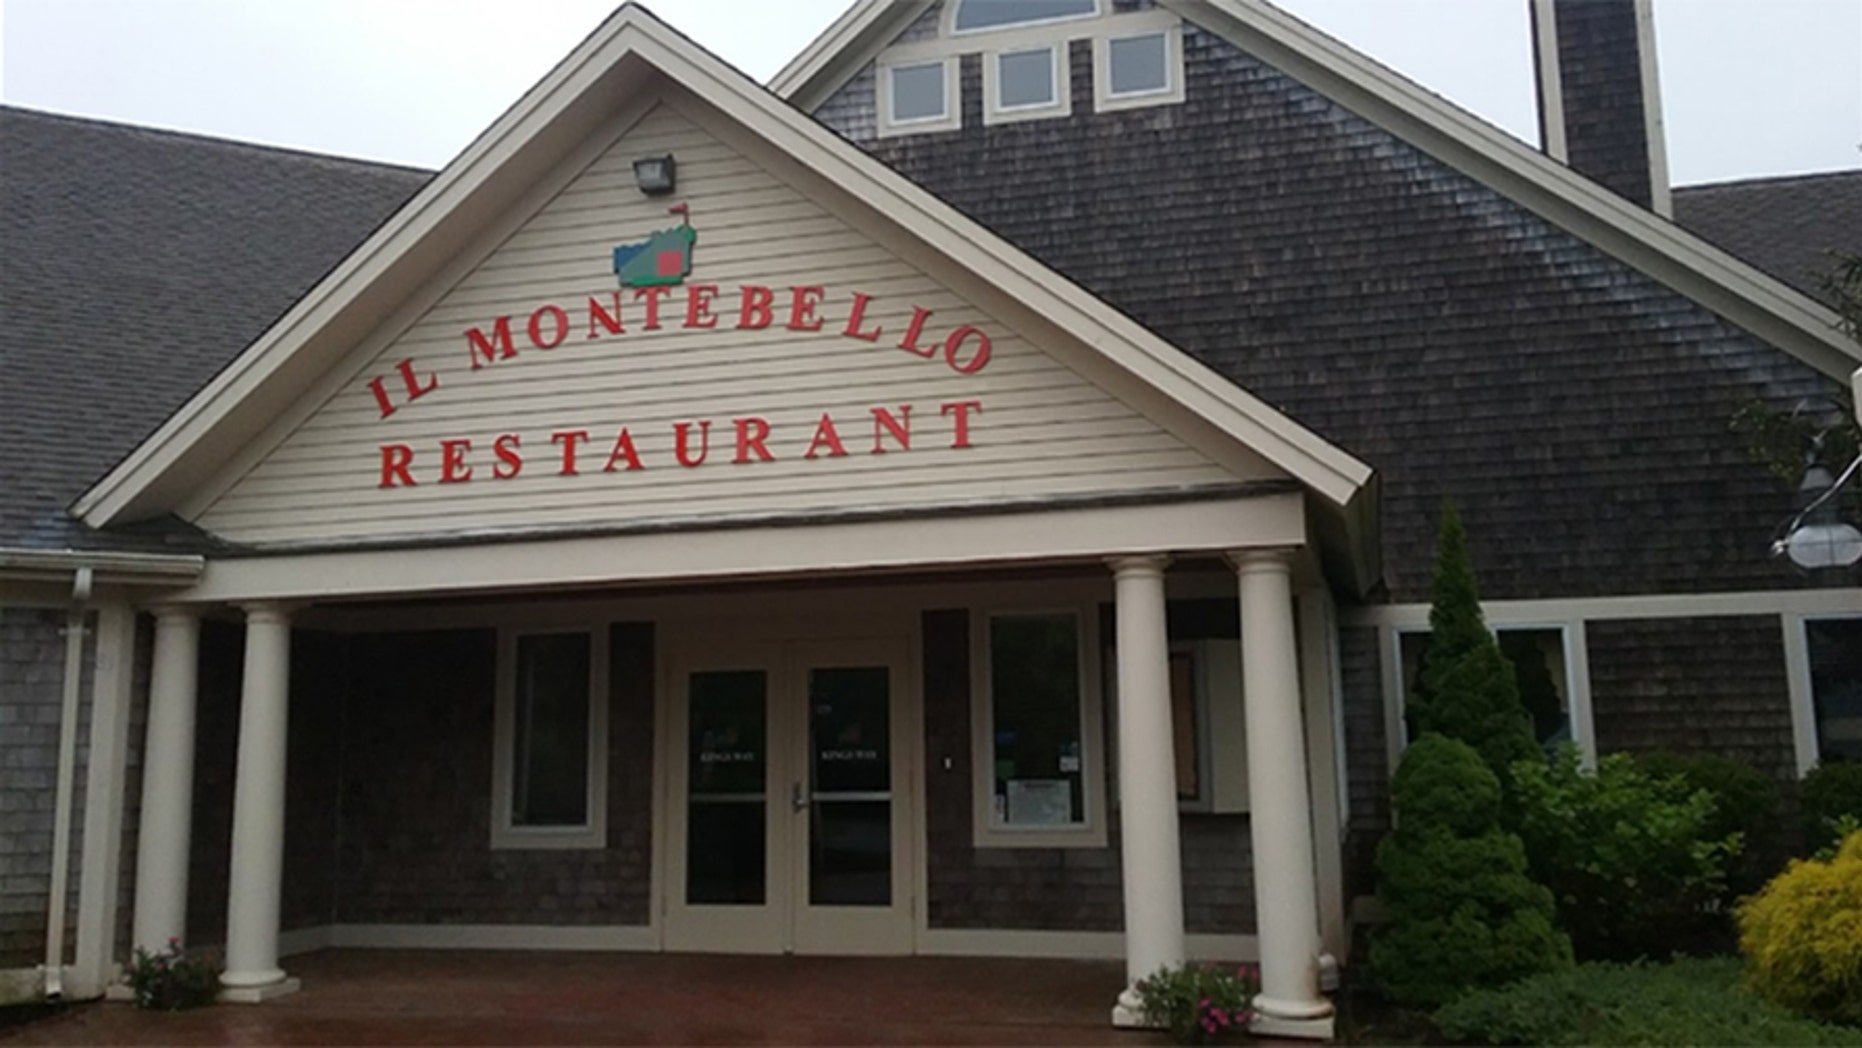 A Massachusetts teen allegedly punched his 63-year-old father outside a restaurant in Yarmouth Port, police said.